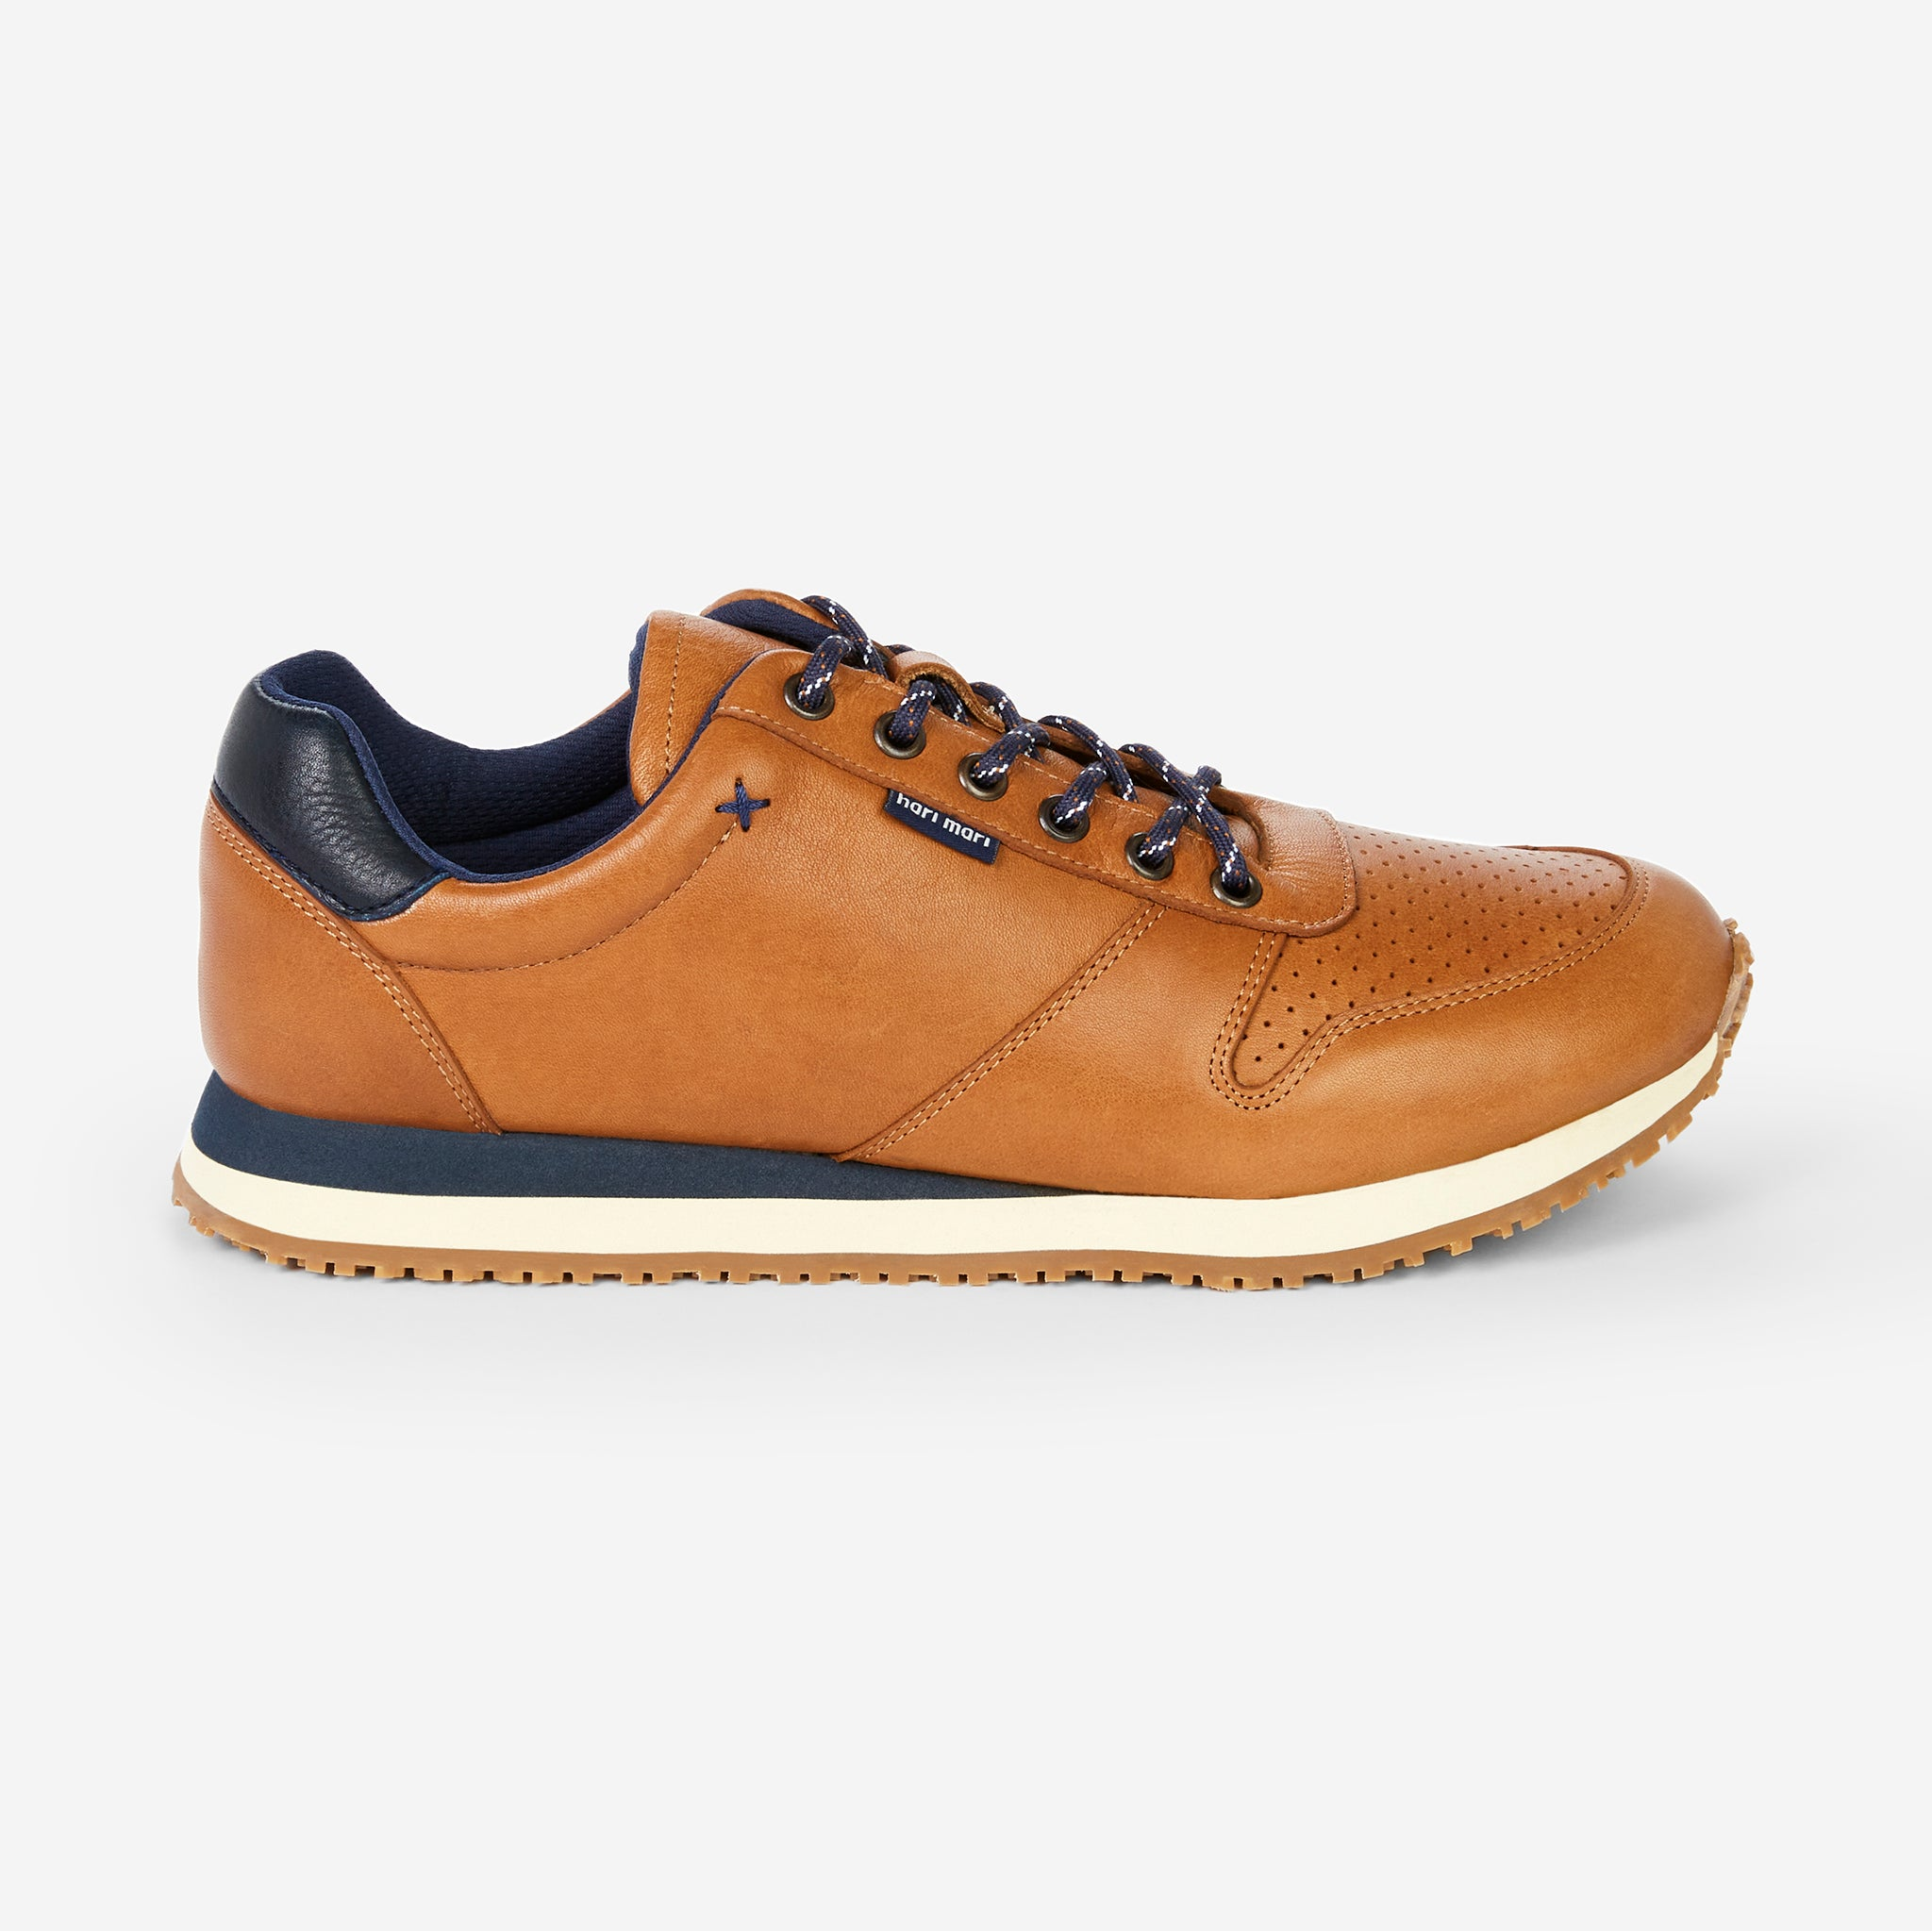 side profile of Dos Santos LX Retro Runner Men's in color Wheat on white background